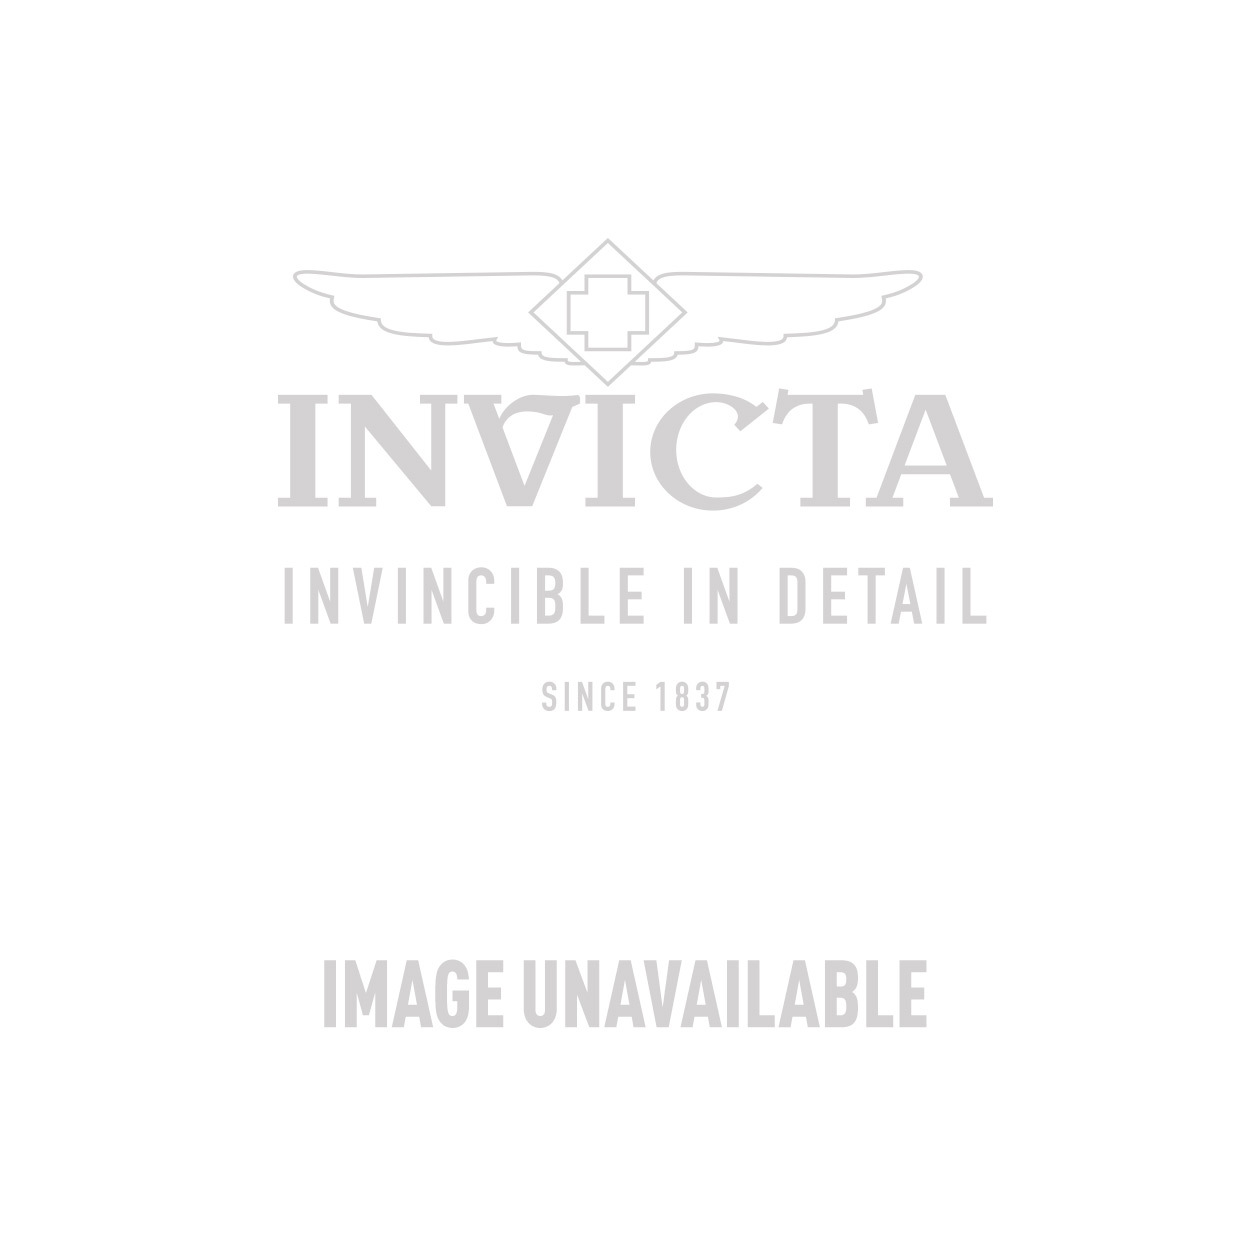 Invicta Angel Quartz Watch - Stainless Steel case with White tone Leather band - Model 15147